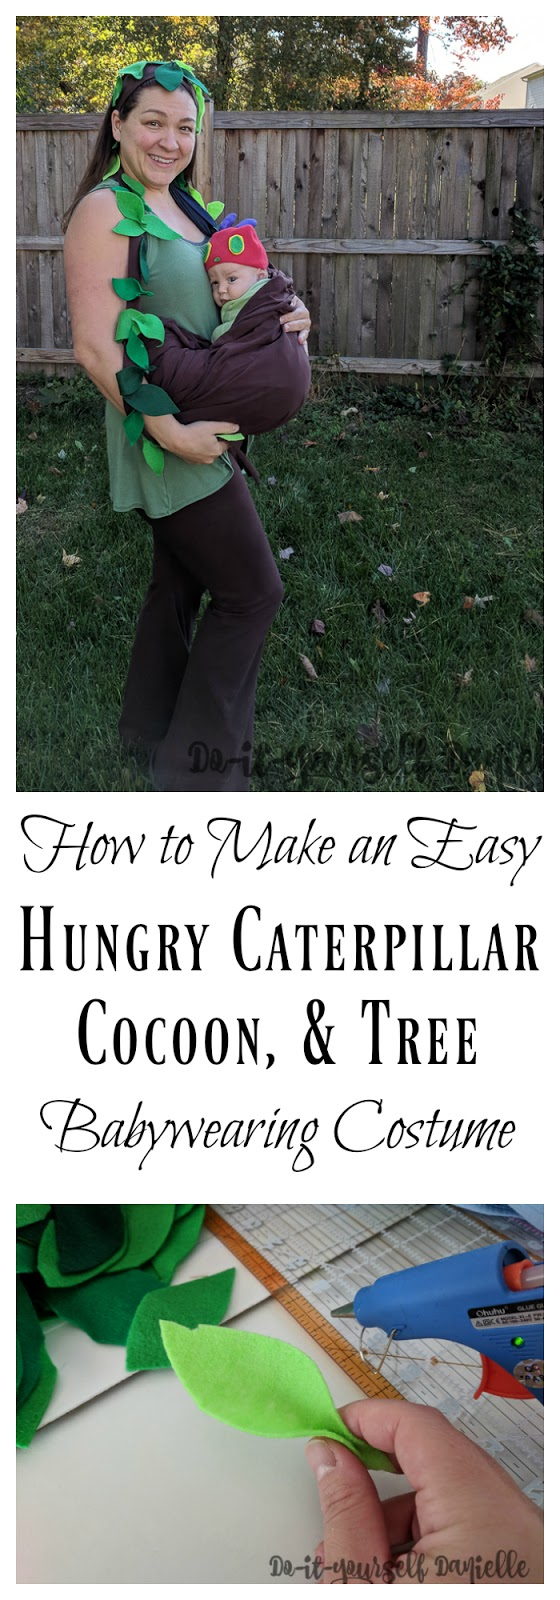 DIY Tree costume for mom with the baby dressed as Hungry Caterpillar in a cocoon.